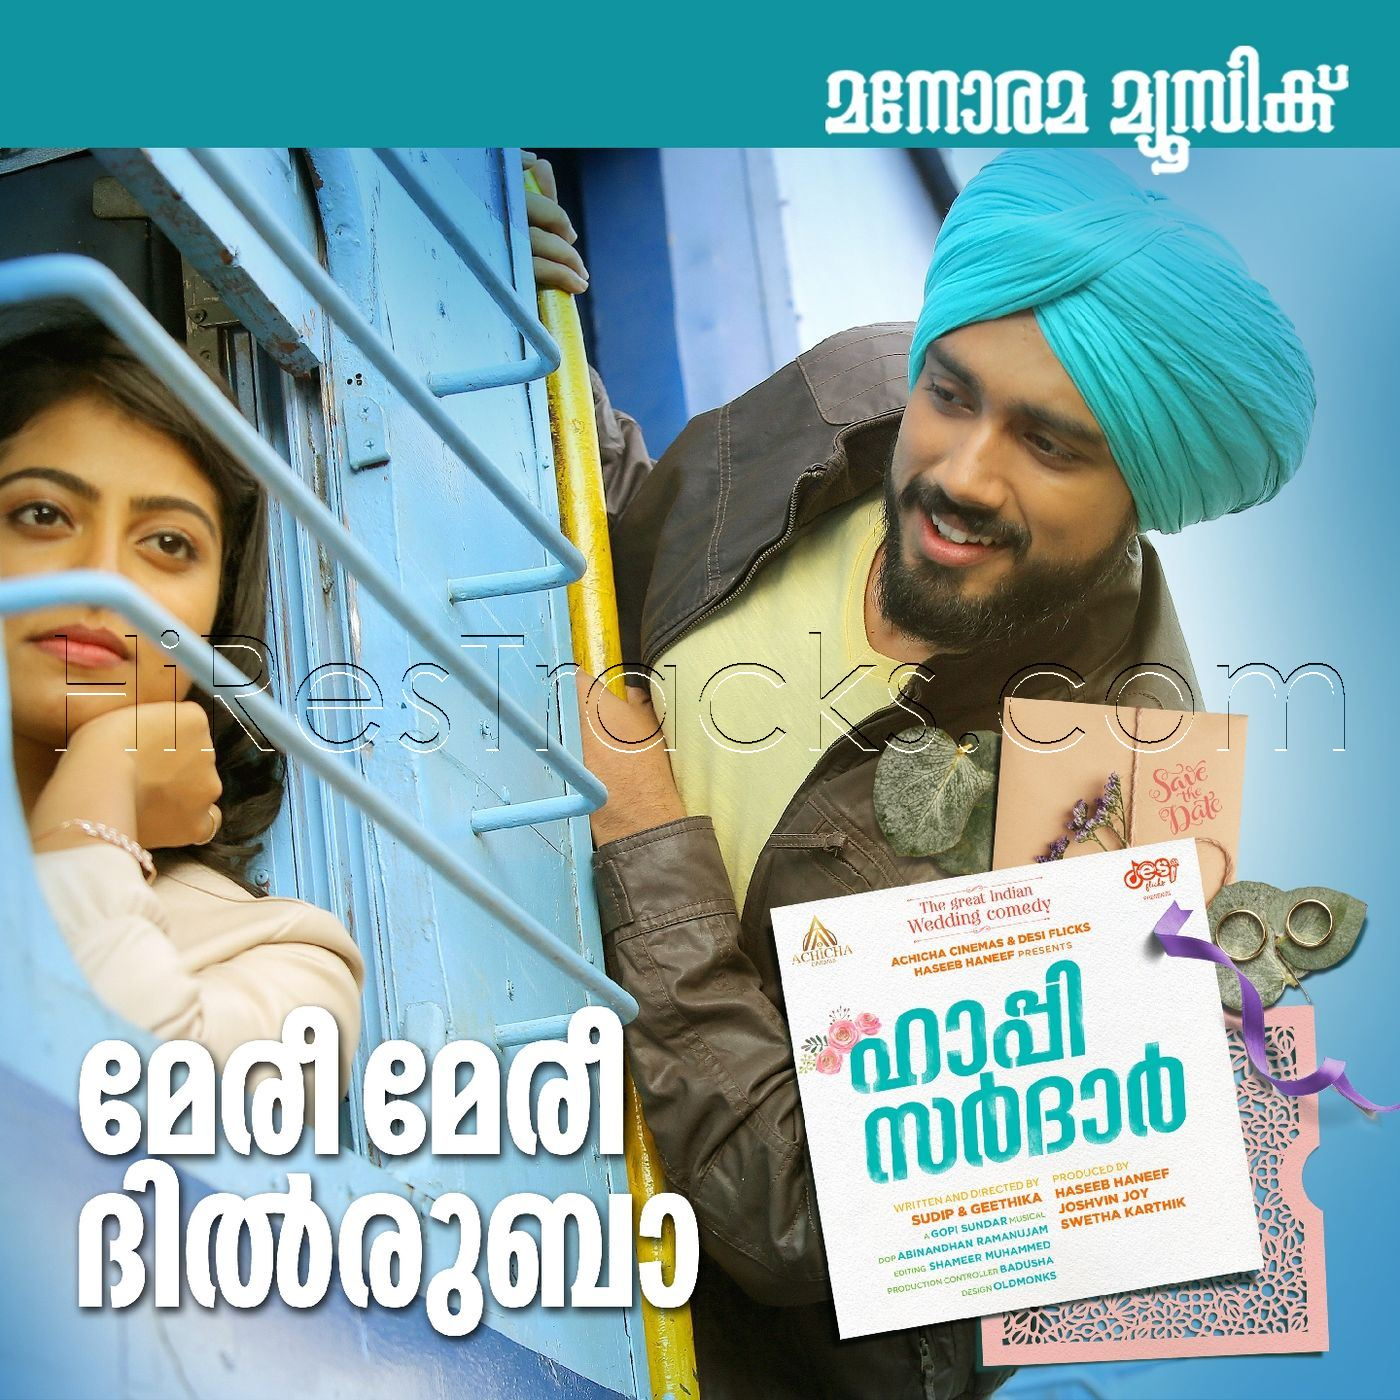 Meri Meri Dilruba (From Happy Sardar) (2019) (Gopi Sunder) (Manorama Music) [Digital-RIP-FLAC]